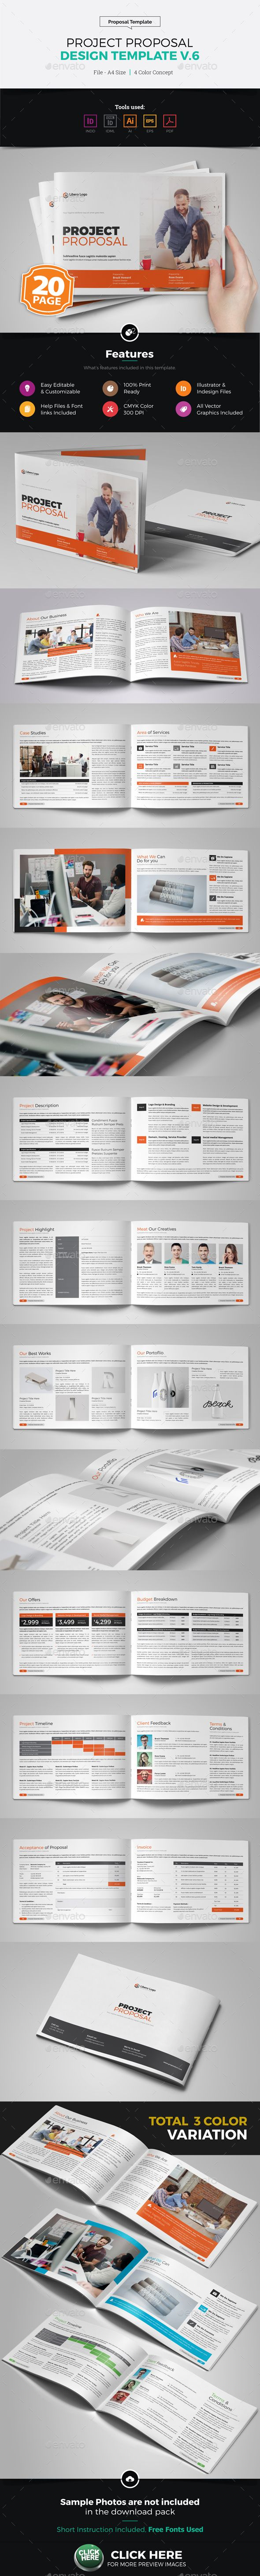 Project Proposal Brochure Template Vector Eps Indesign Indd Ai